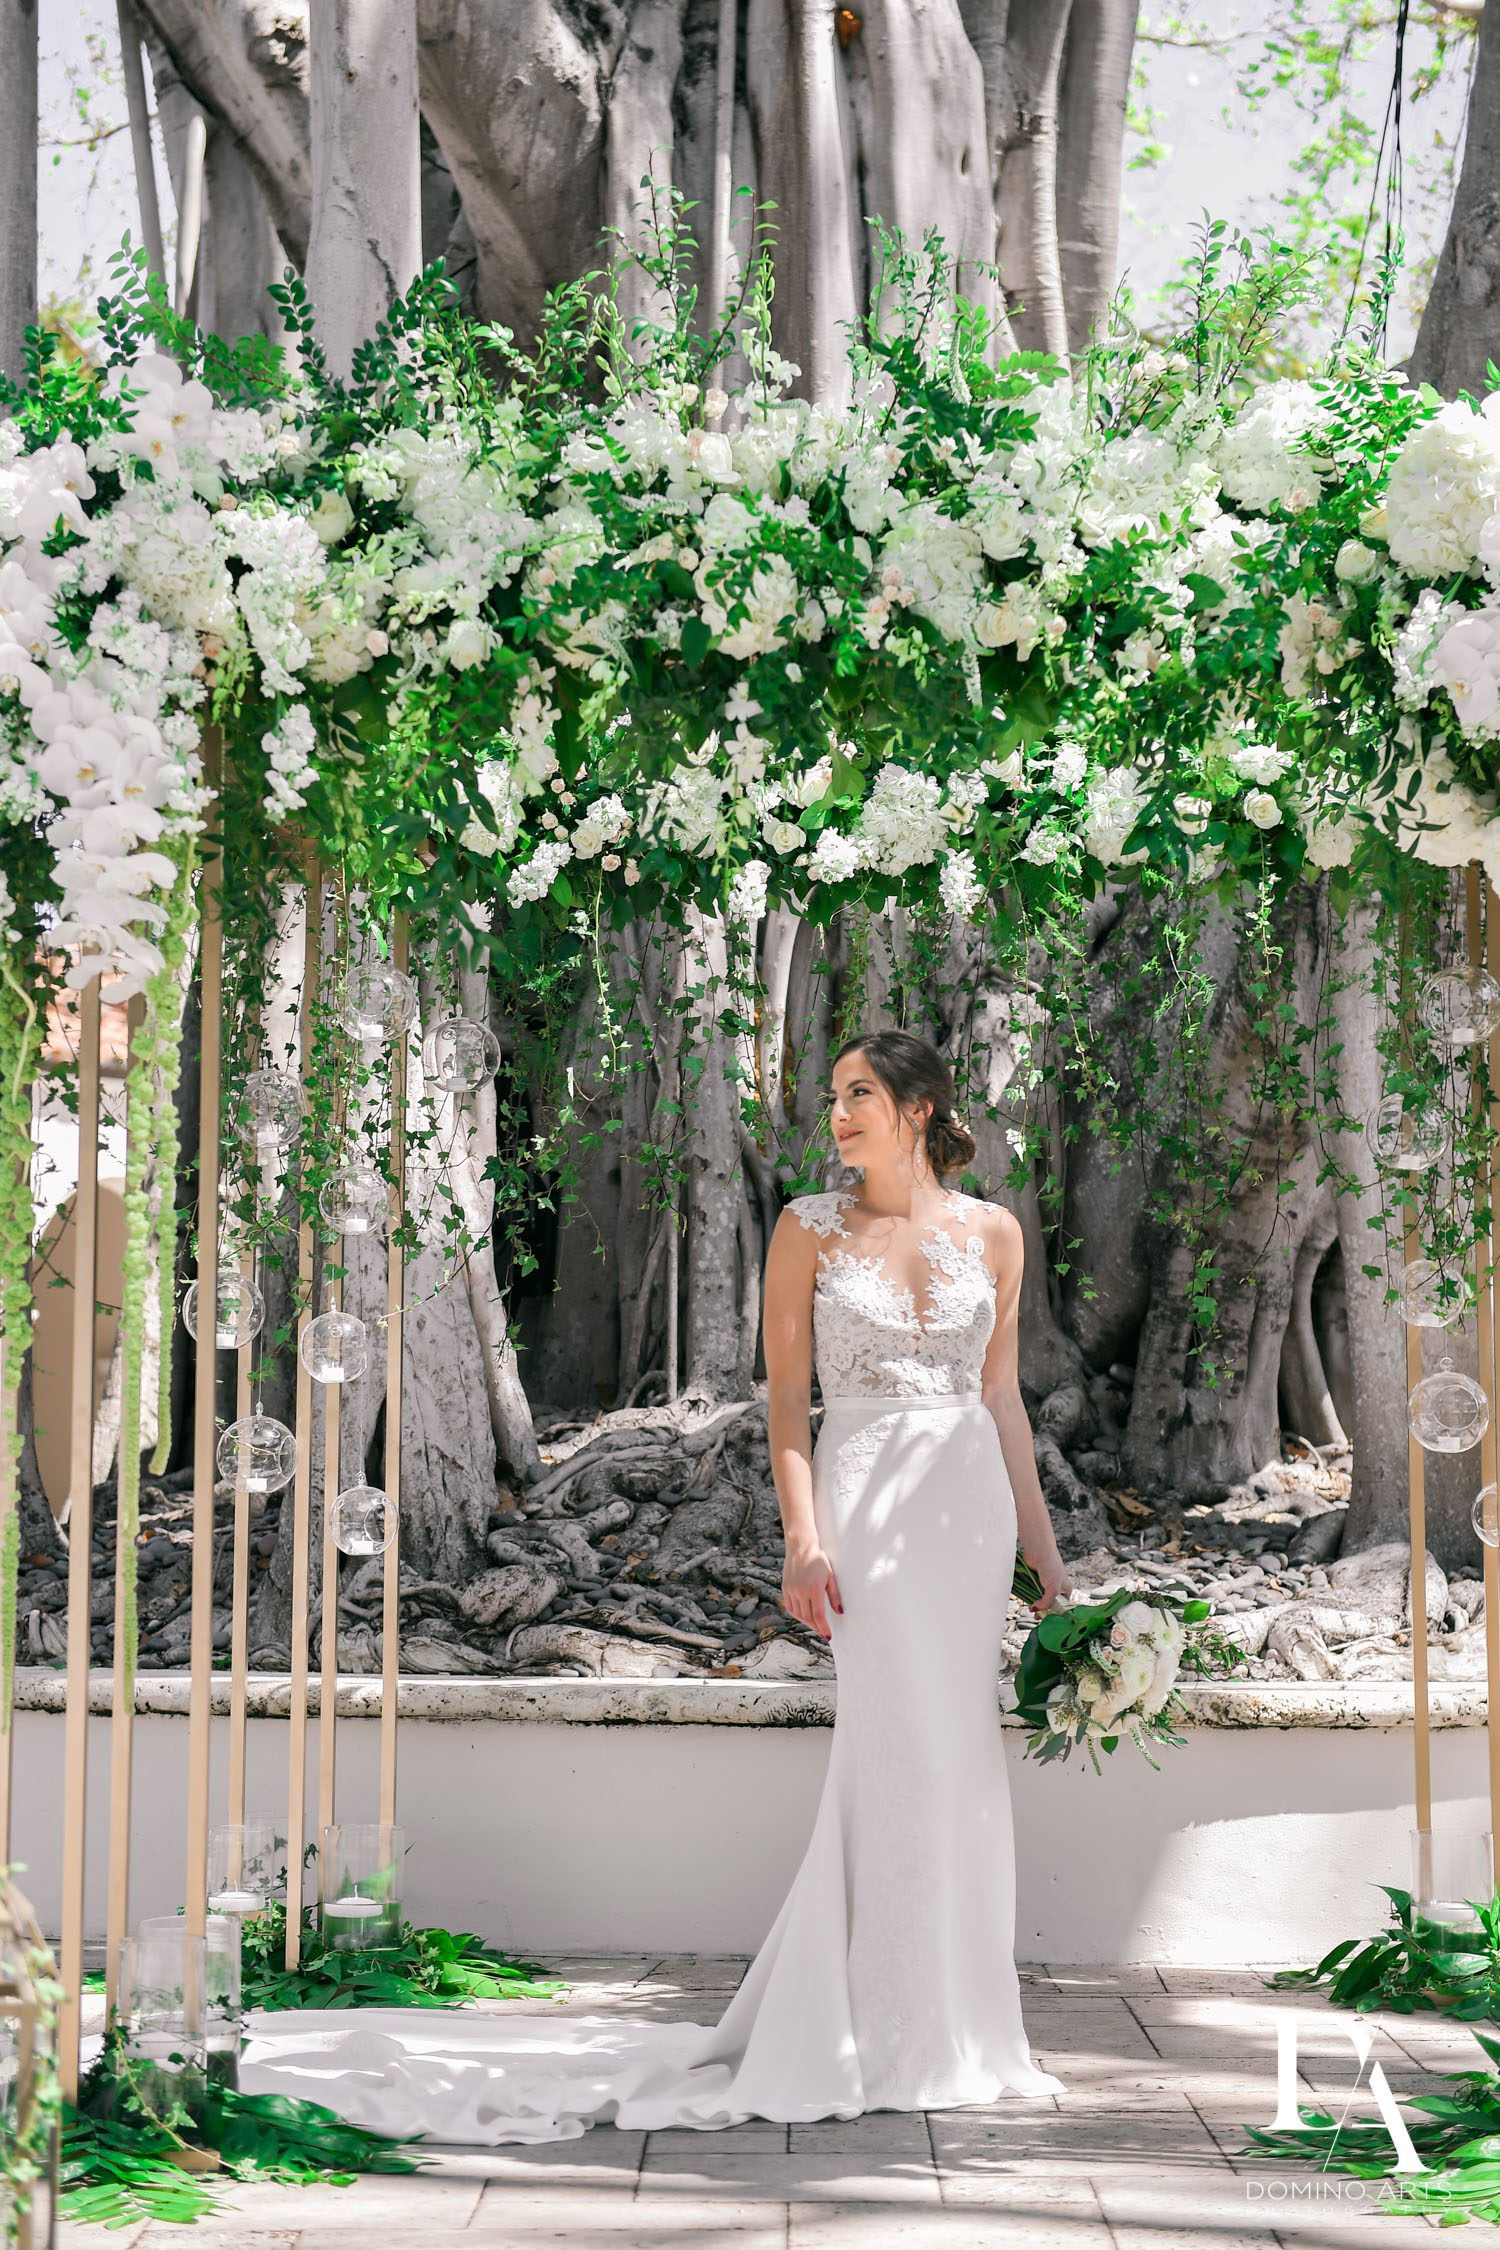 flower chuppah at Tropical Garden Wedding at Fisher Island Miami by Domino Arts Photography